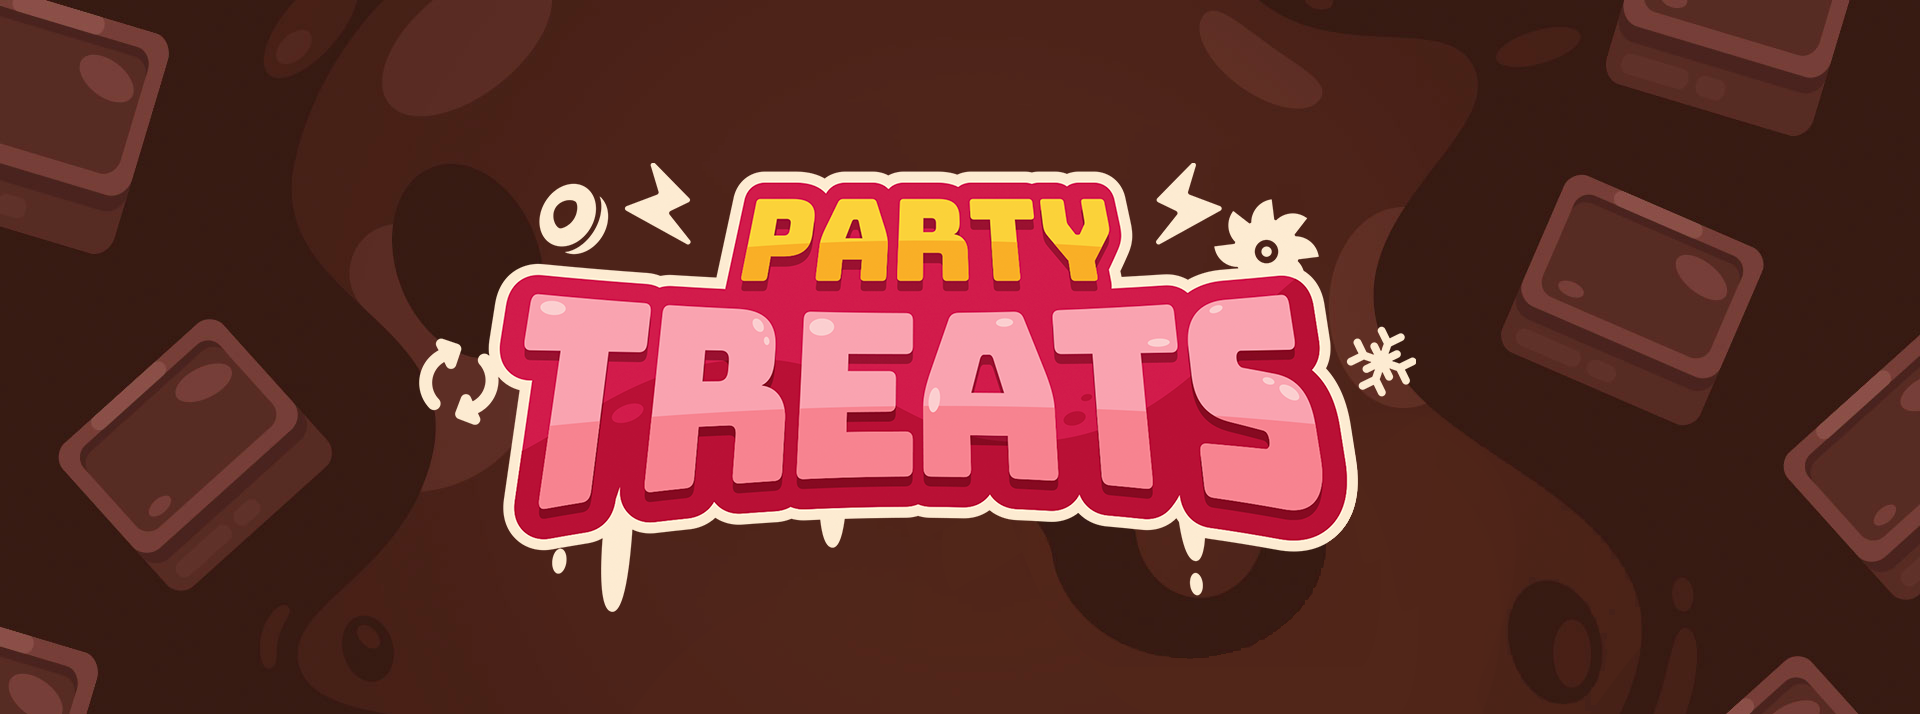 Party Treats